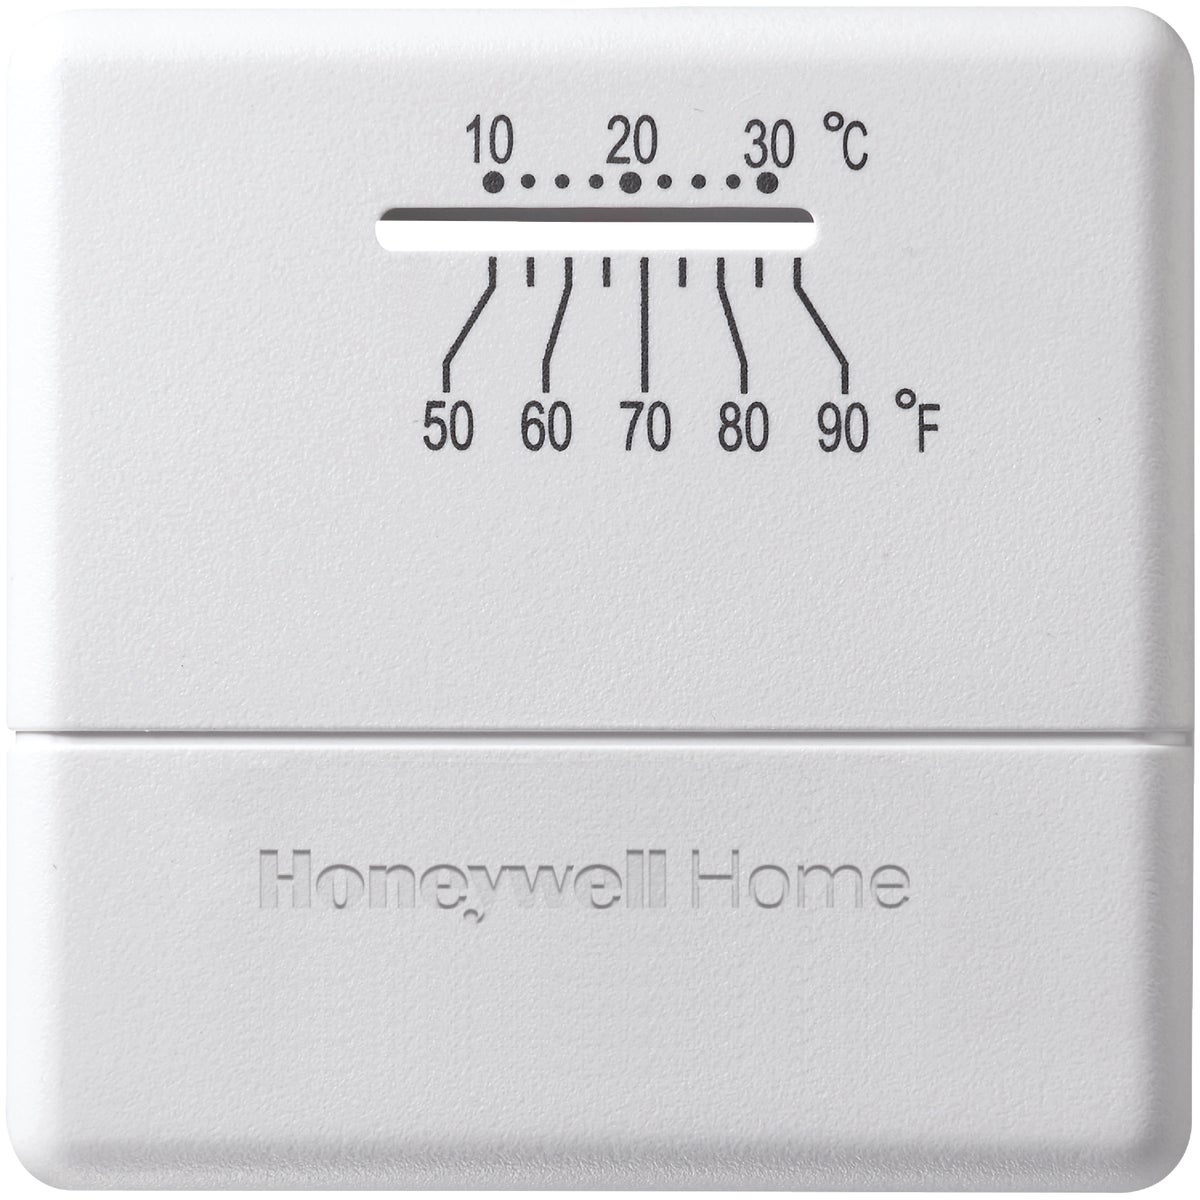 ECONOMY HEAT THERMOSTAT